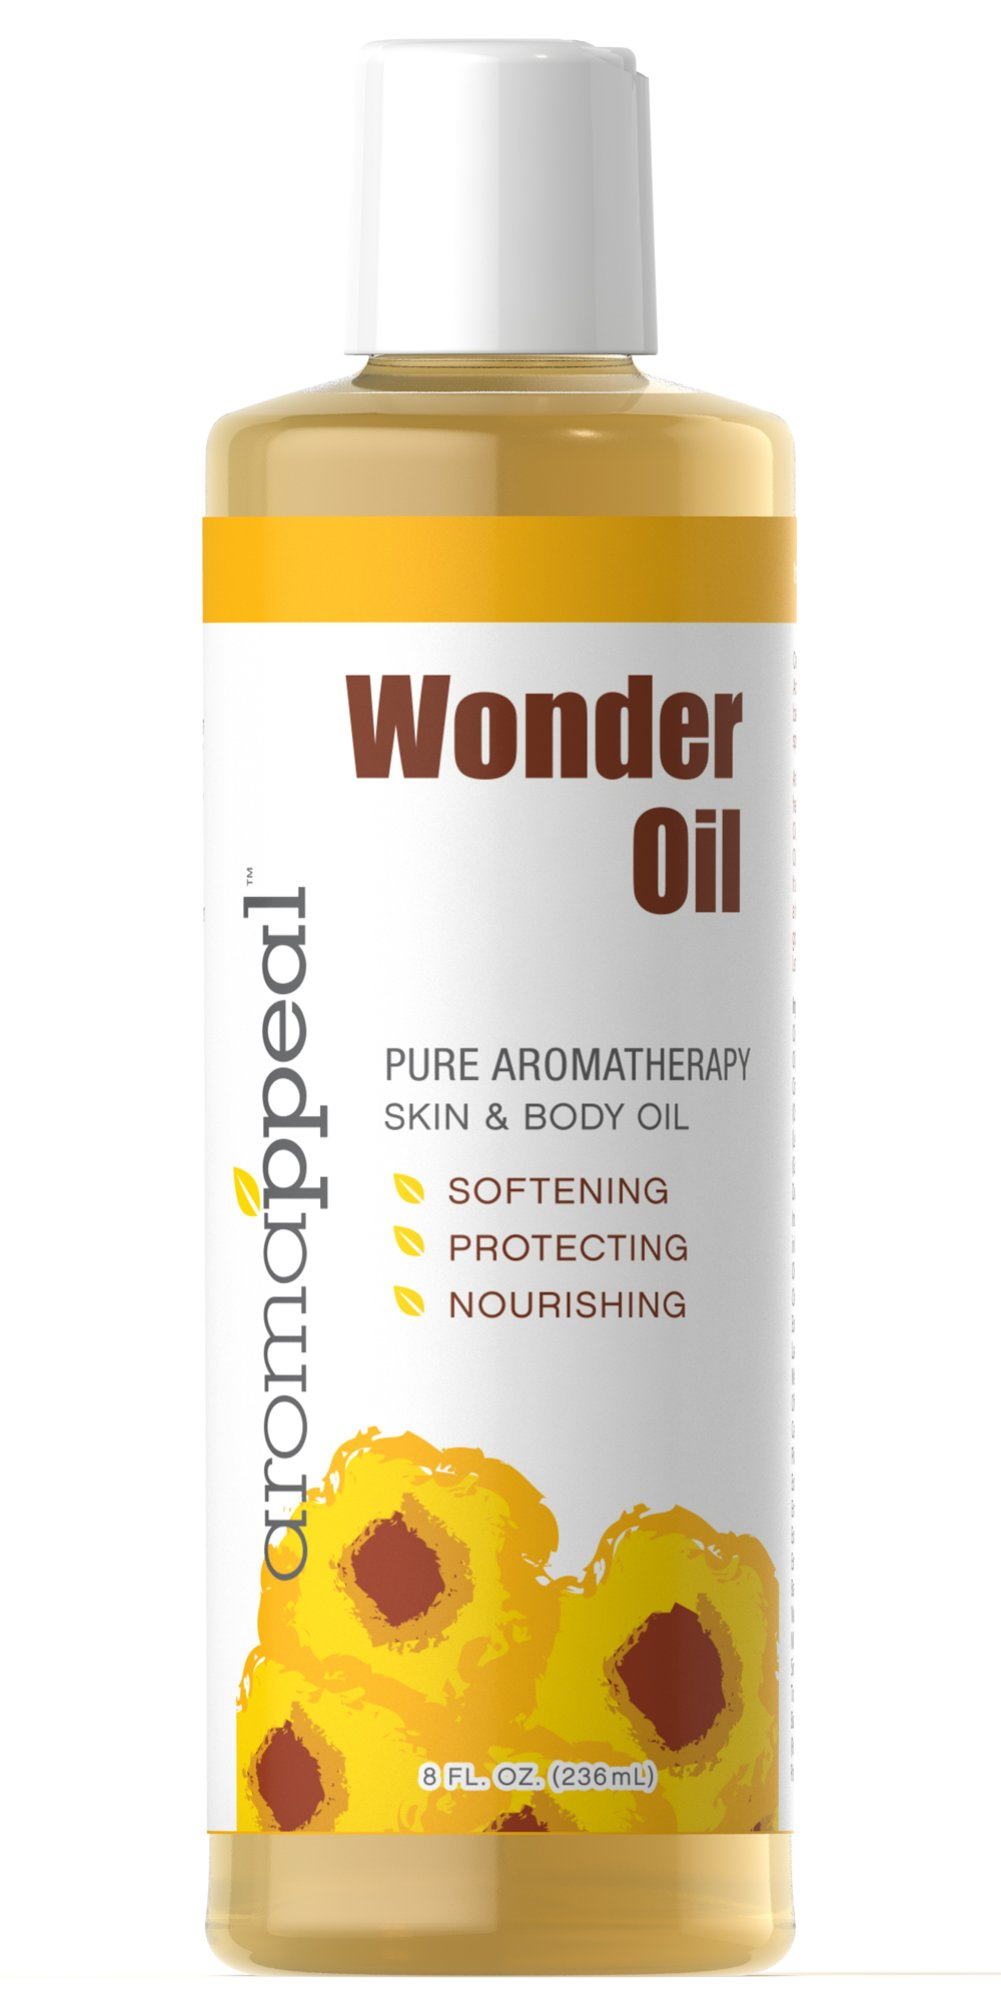 Wonder Oil Thumbnail Alternate Bottle View